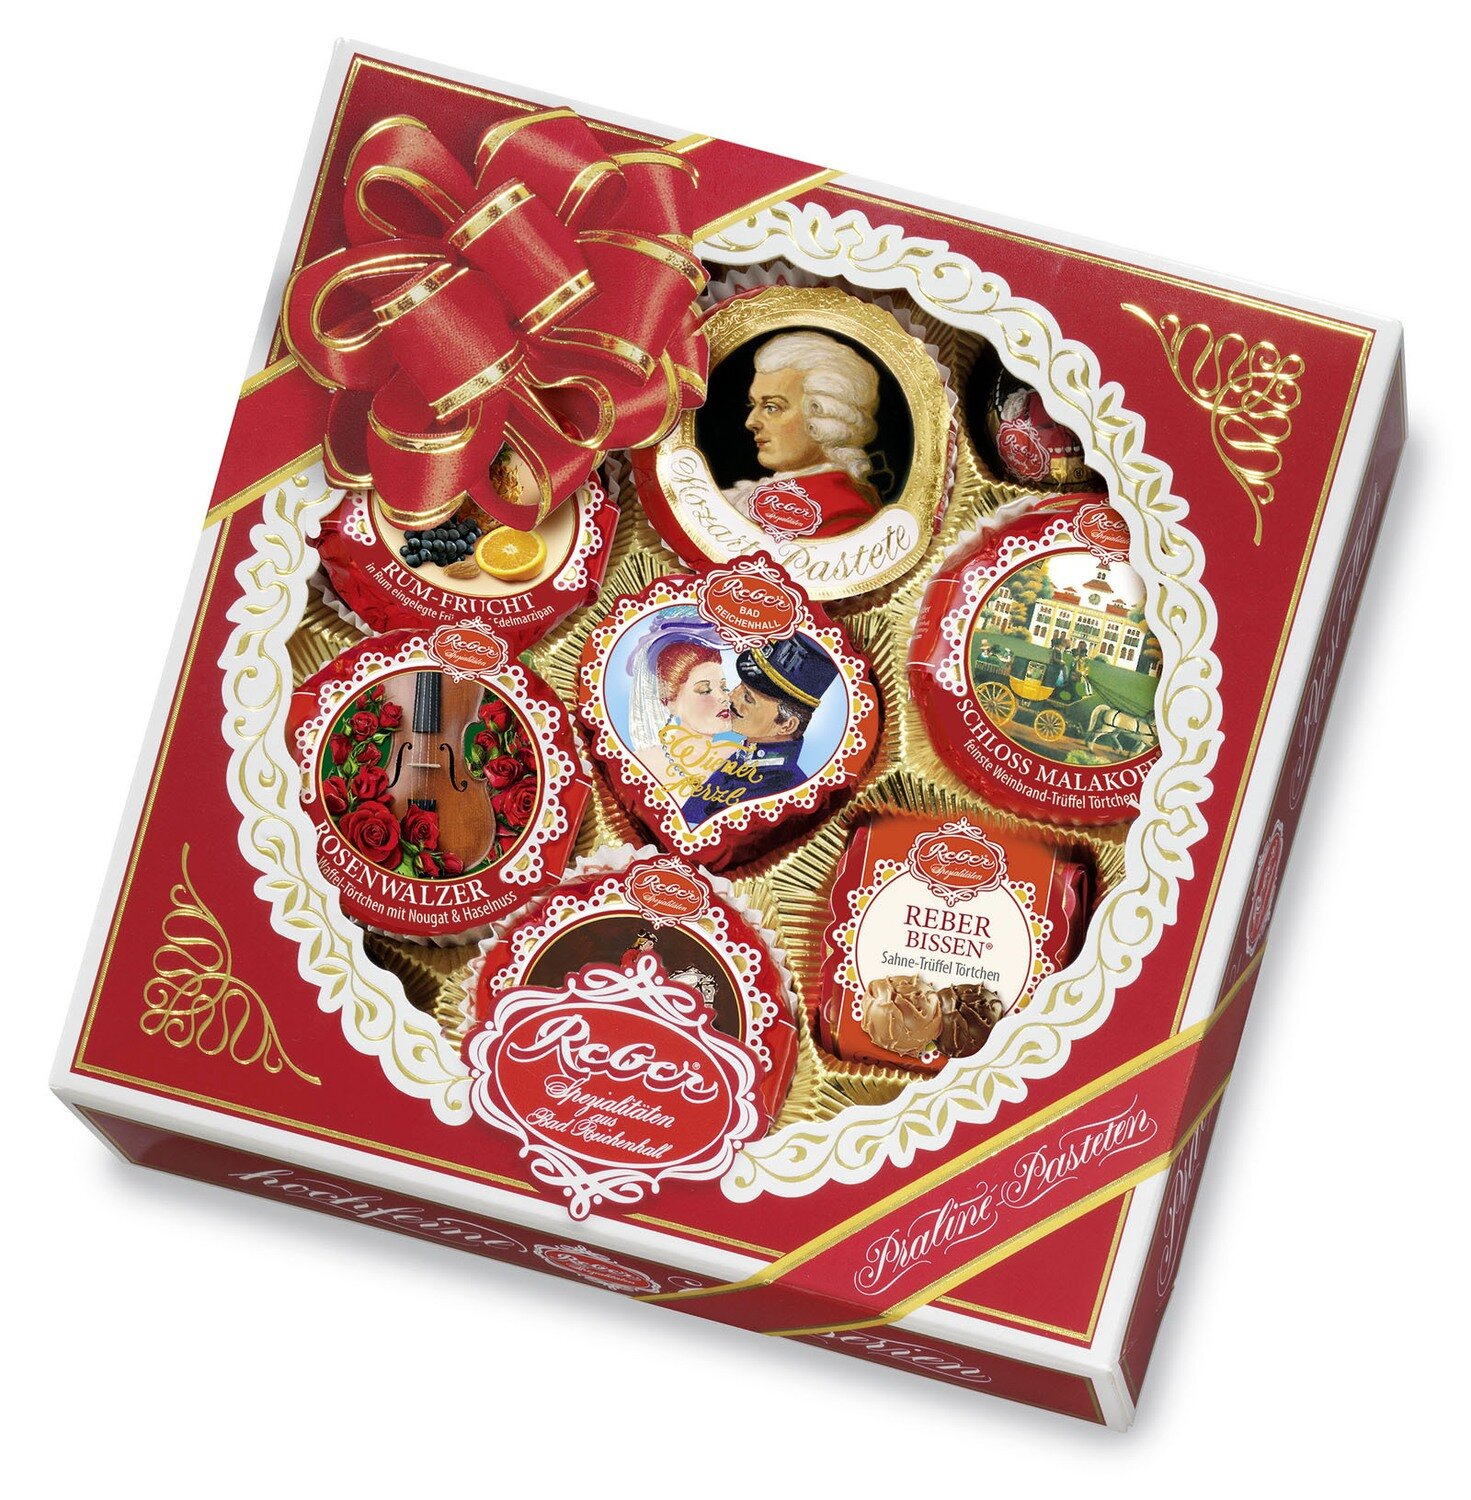 Reber Marzipan Square Specialty Gift Box, 340g/12.1 Oz